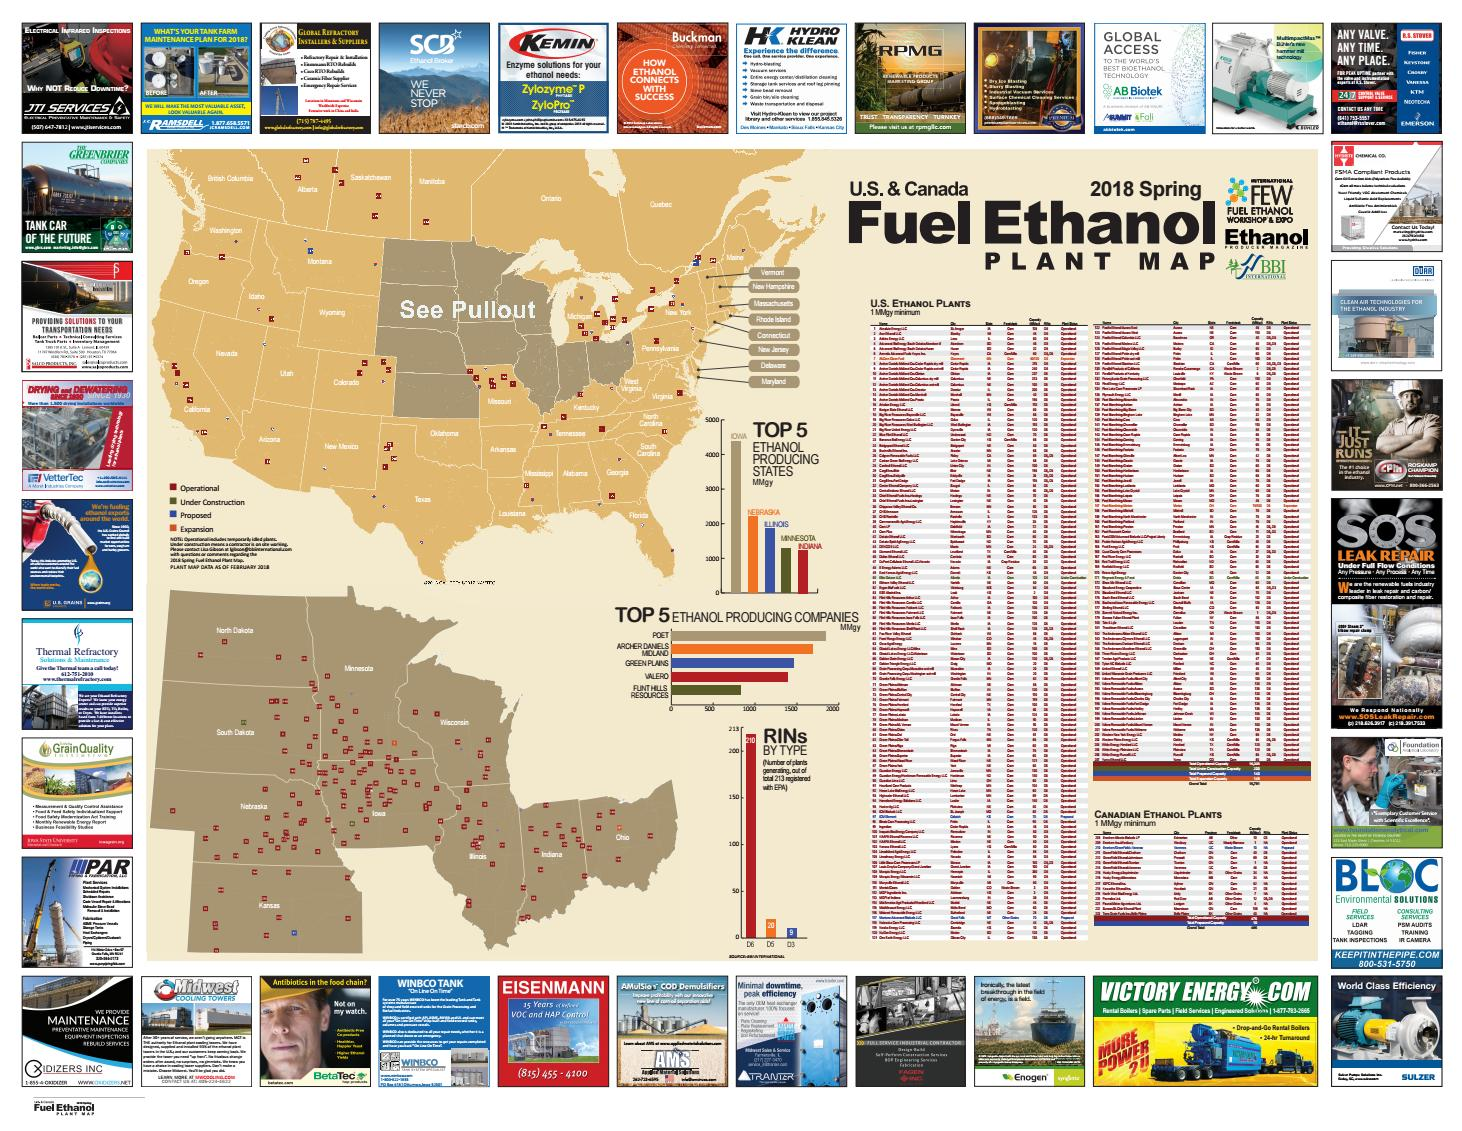 page_1 U S Map Of Ethanol Stations on propane map, petroleum map, arsenic map, bilirubin map, biomass map, production plants us map, valero plants map, canadian livestock locations map, carbon dioxide map, sulfur map, co2 map,